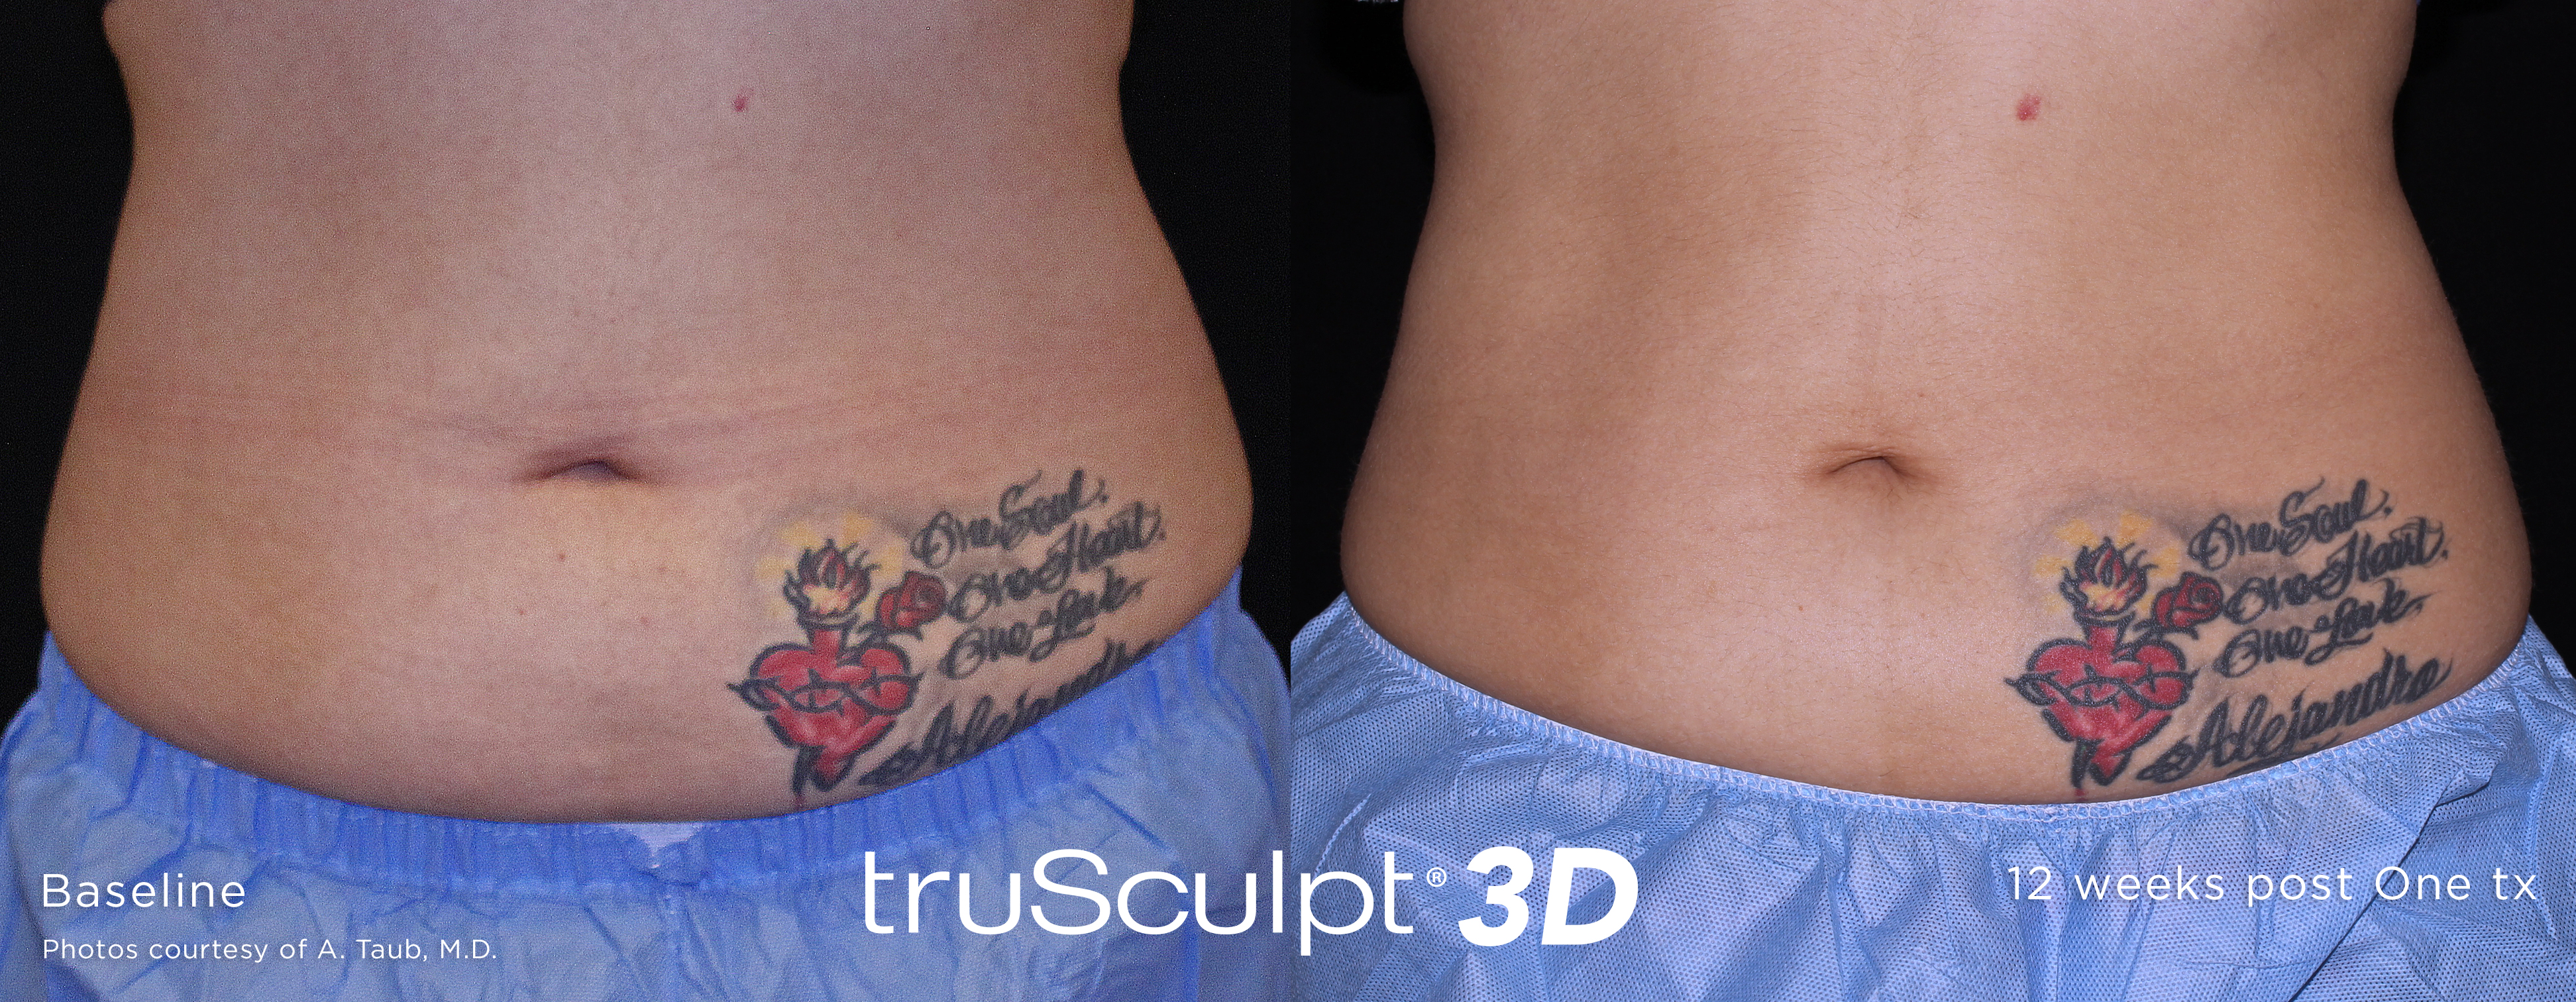 trusculpt before and after